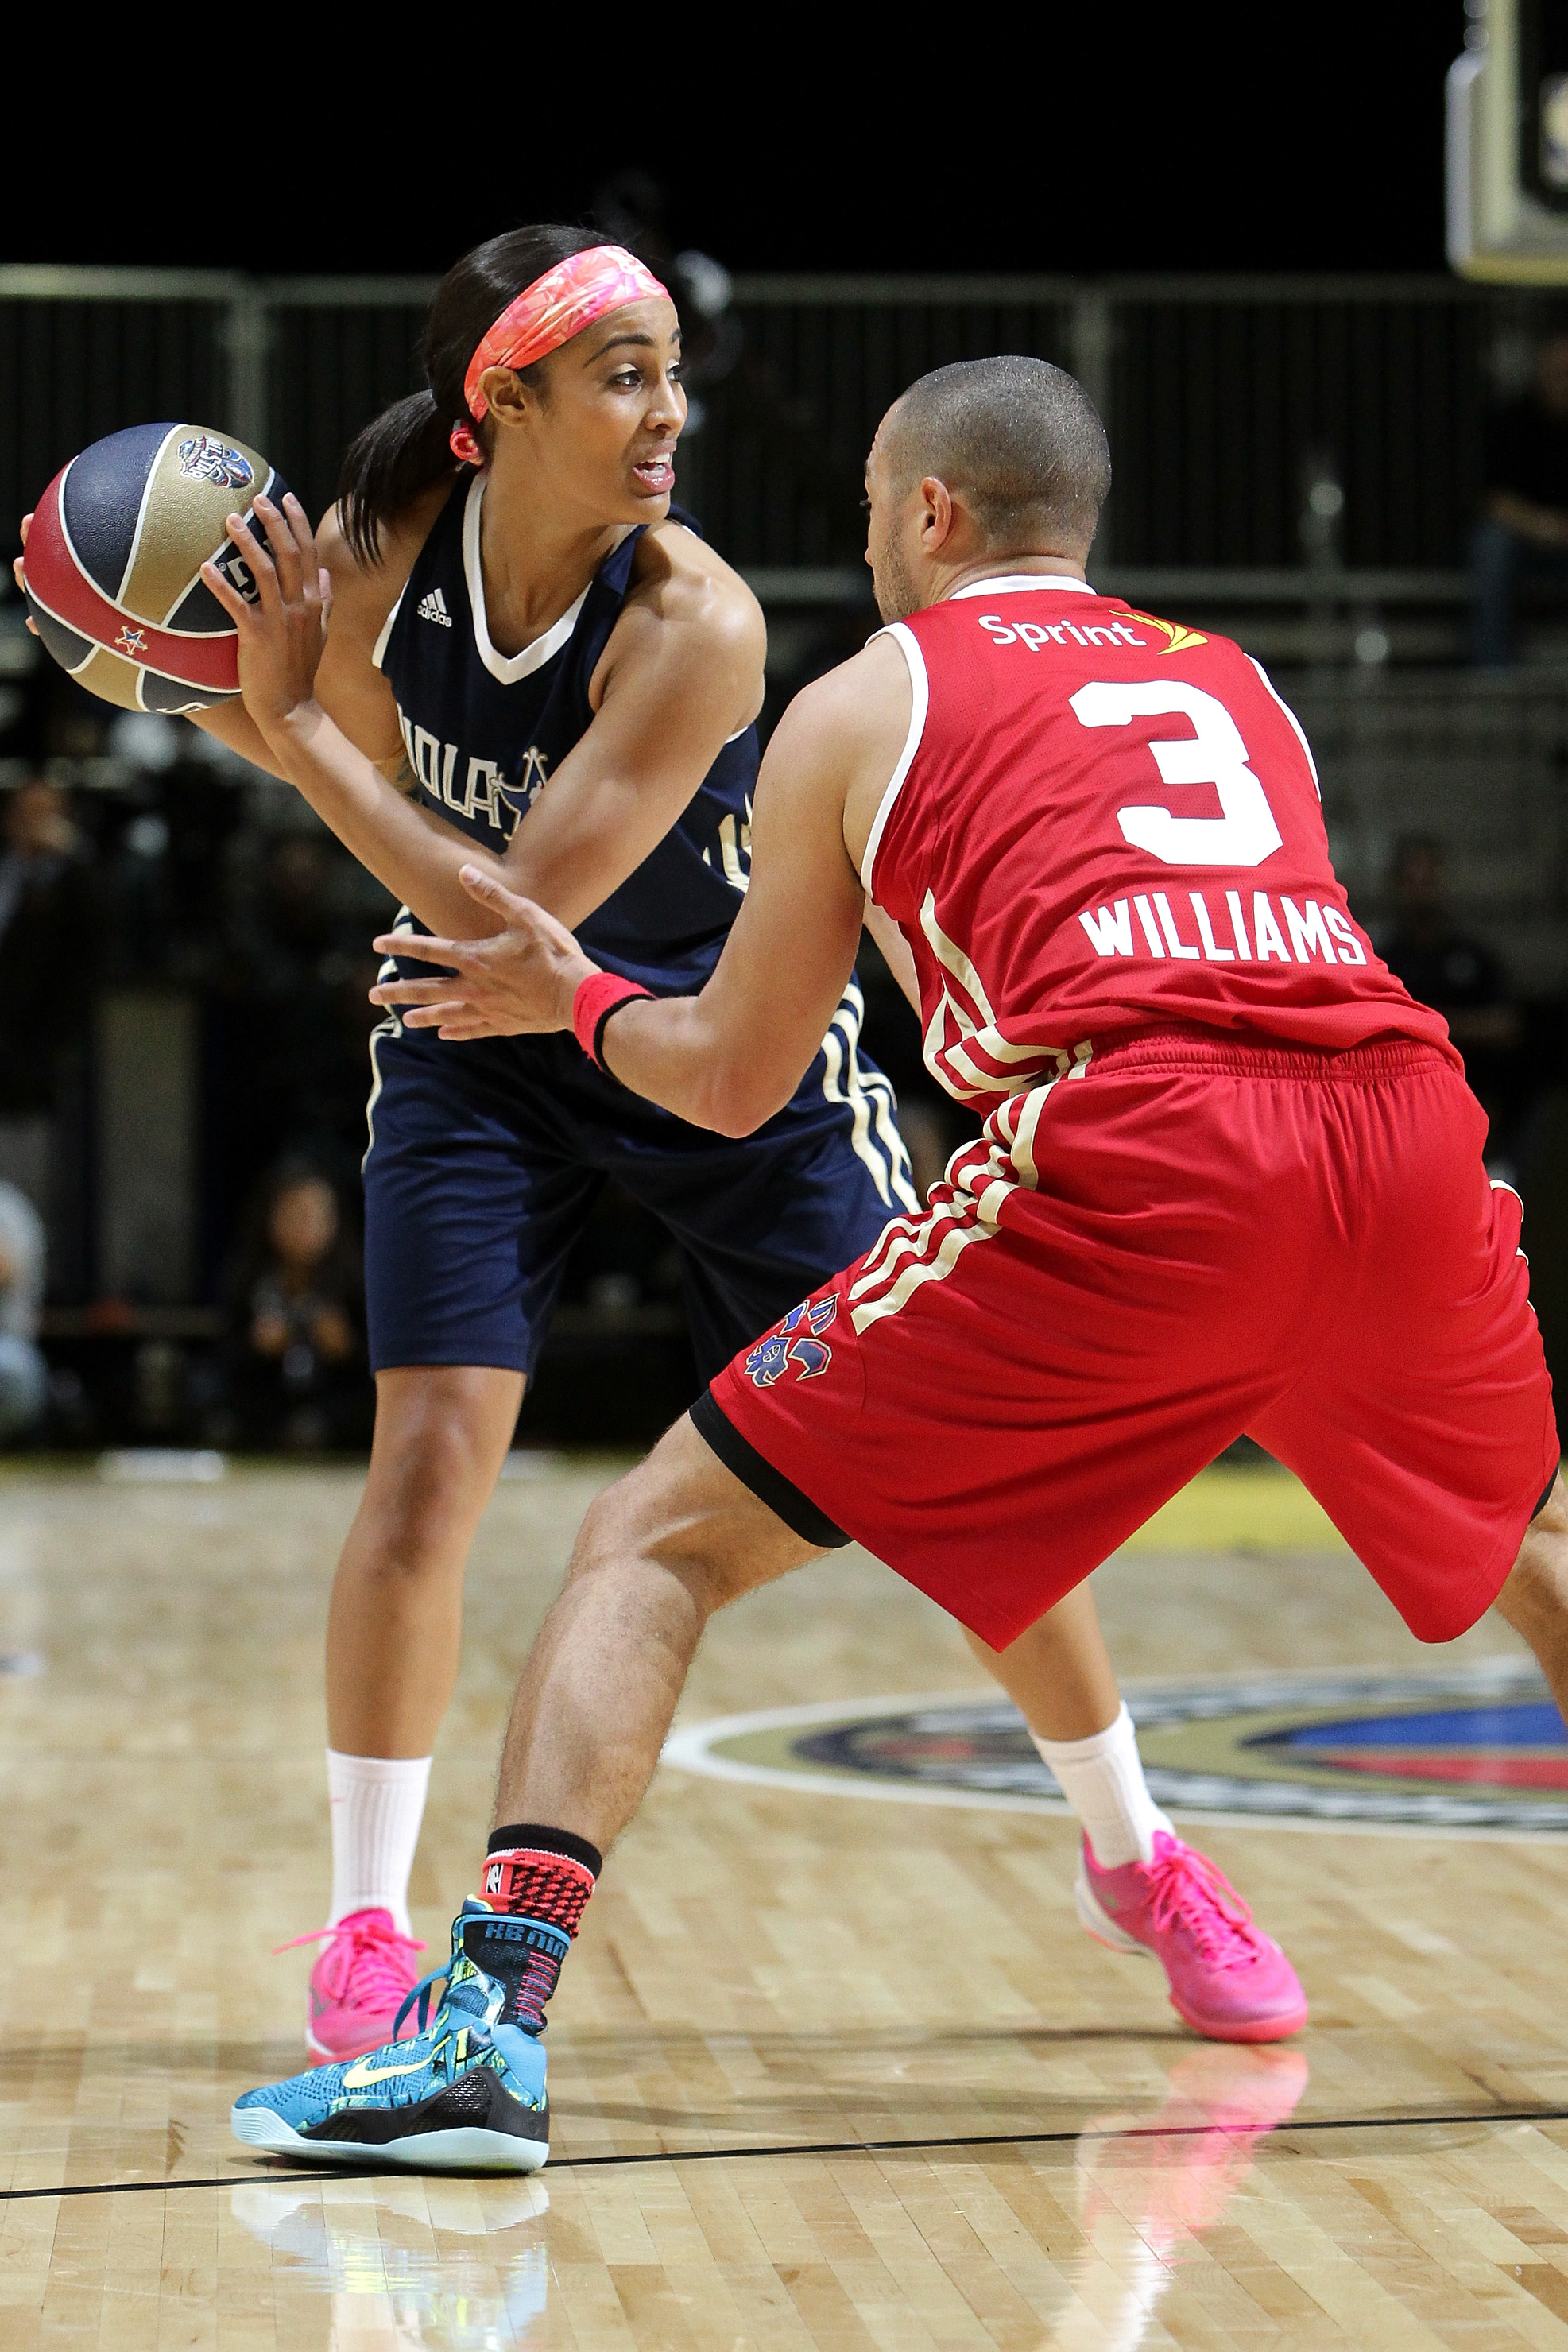 I don't mind seeing WNBA players in a celebrity game, but they could be used in other events too, because, let's be honest. Skylar Diggins will eat Jesse Williams alive any day in basketball.